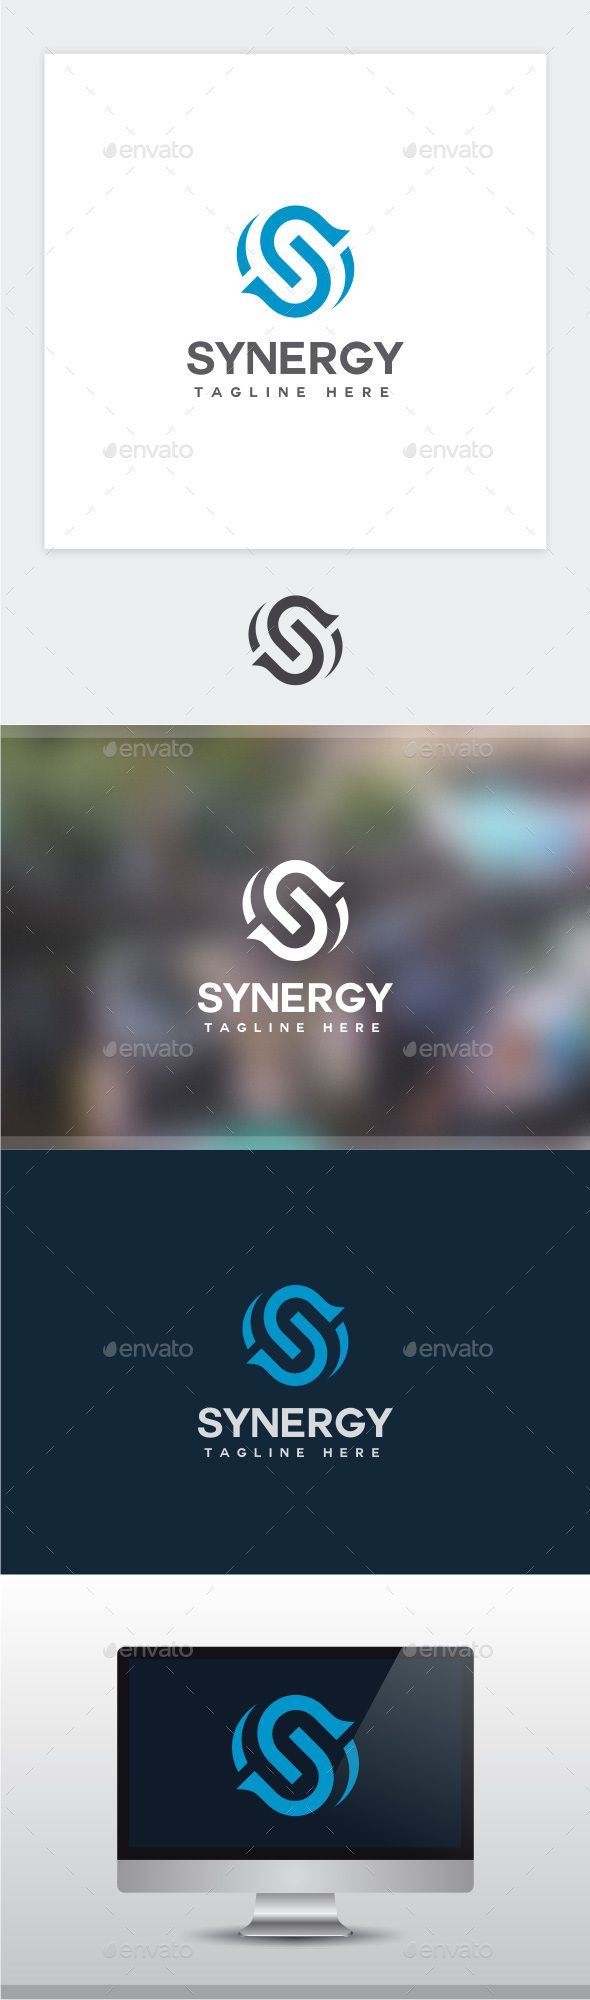 Synergy - Letter S Logo - PSD Template • Only available here ➝ http://graphicriver.net/item/synergy-letter-s-logo/16572539?ref=pxcr